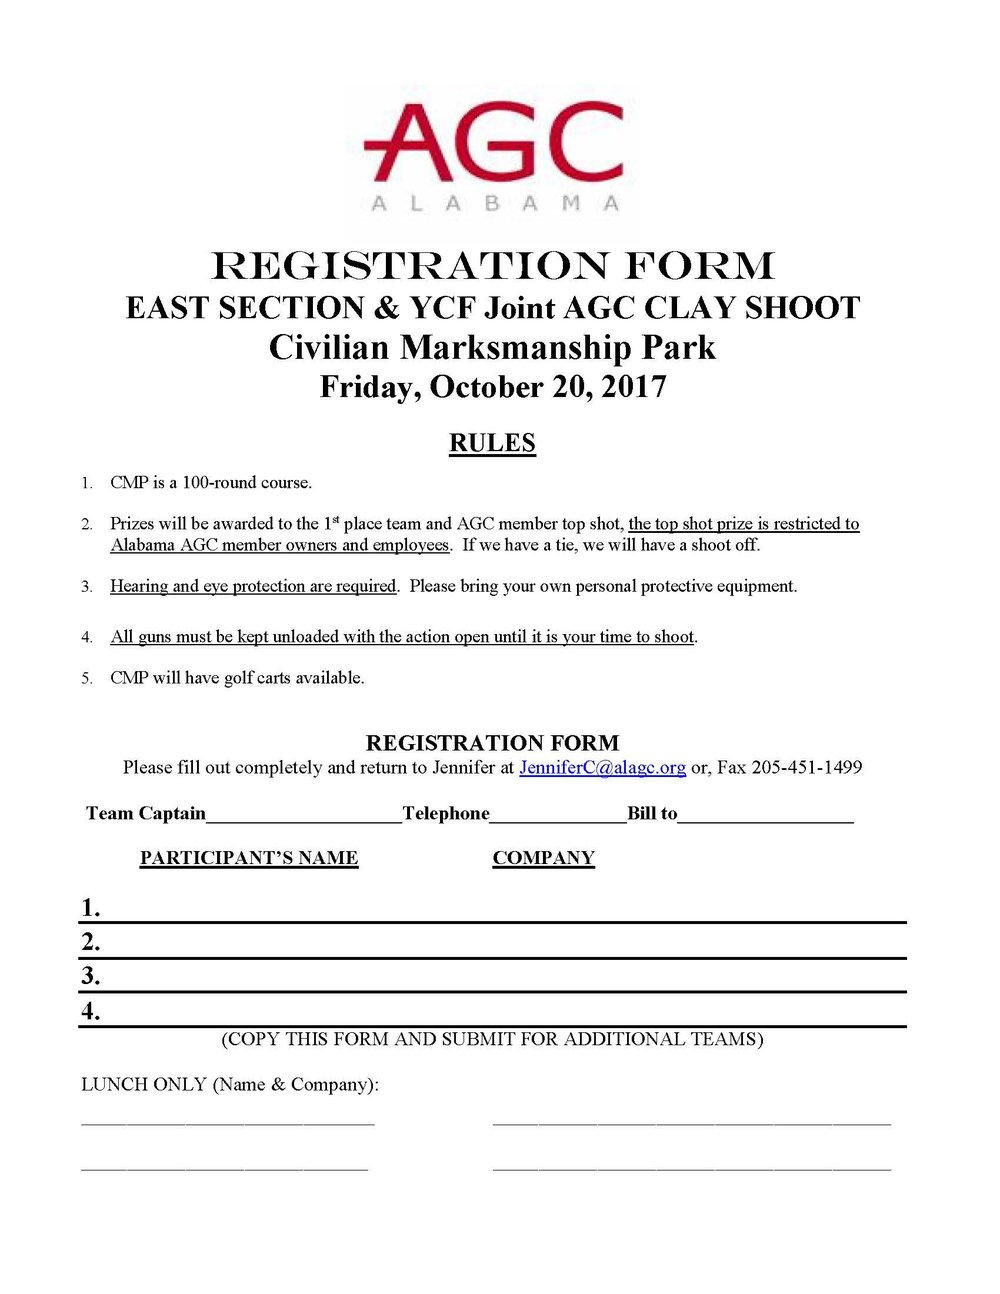 EastYCF Joint Clay Shoot 2017_Page_2.jpg